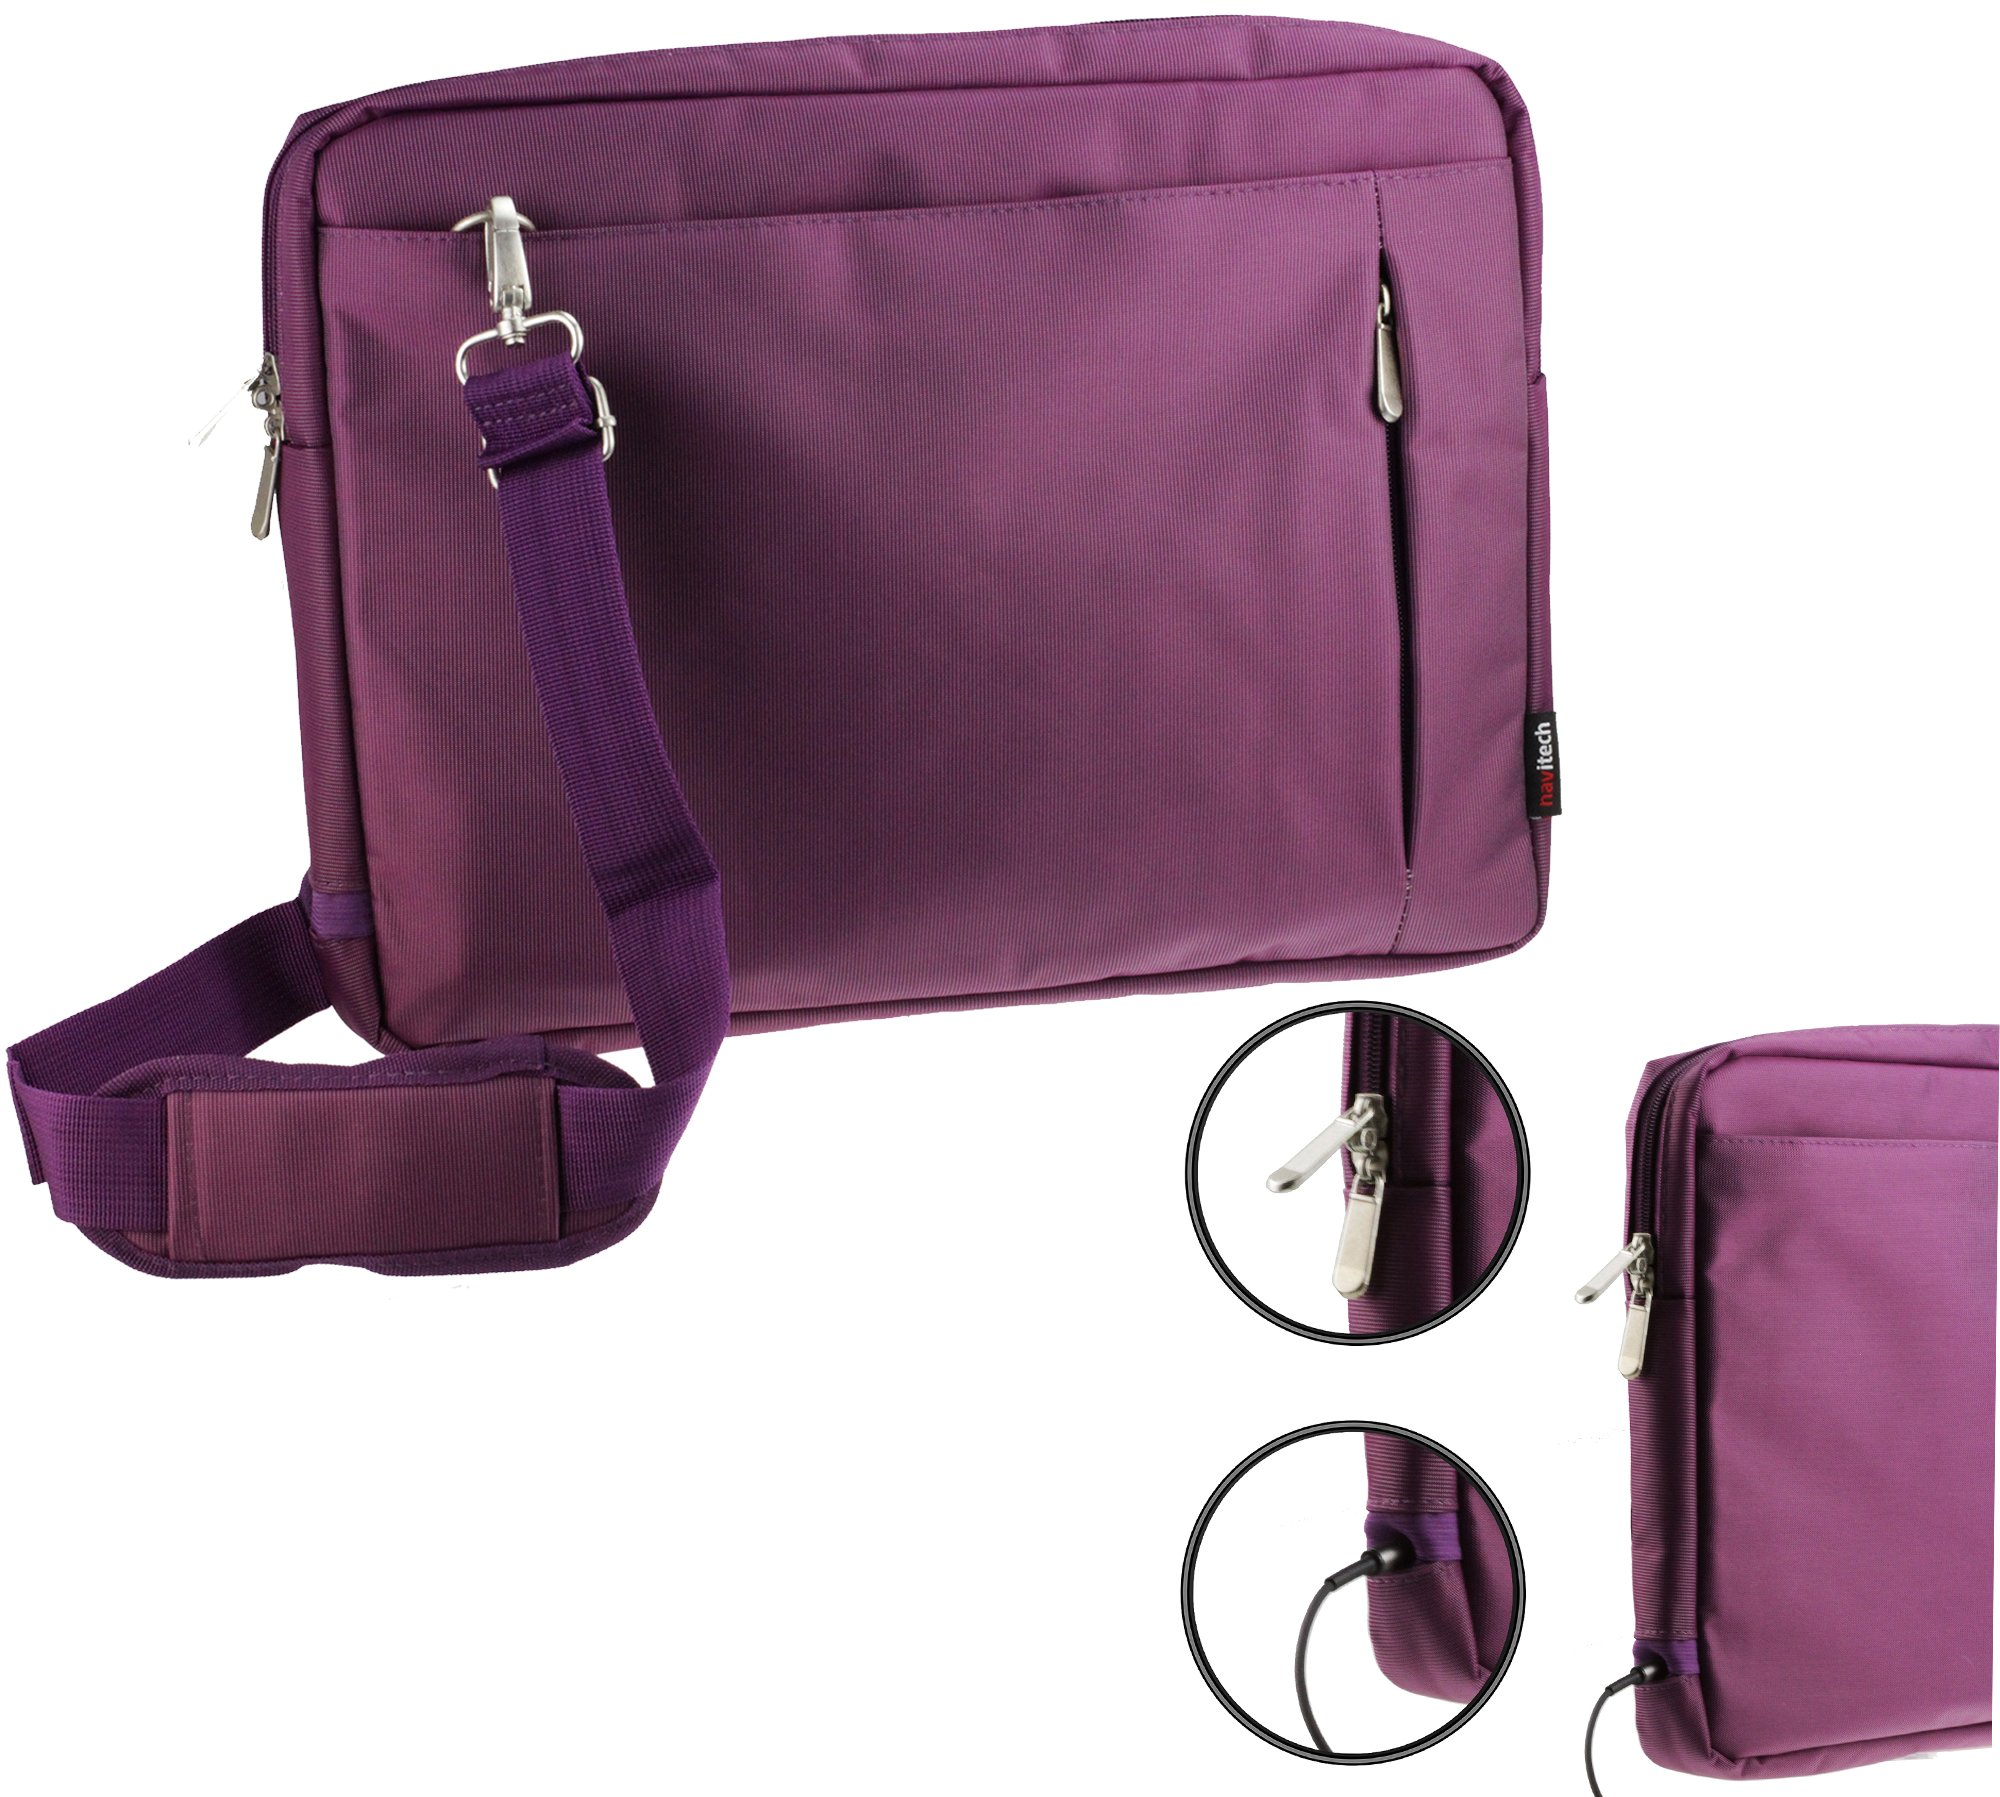 Navitech Purple Carry Case / Cover Bag For Portable dvd players Including the Sylvania SDVD1030-B 10-Inch